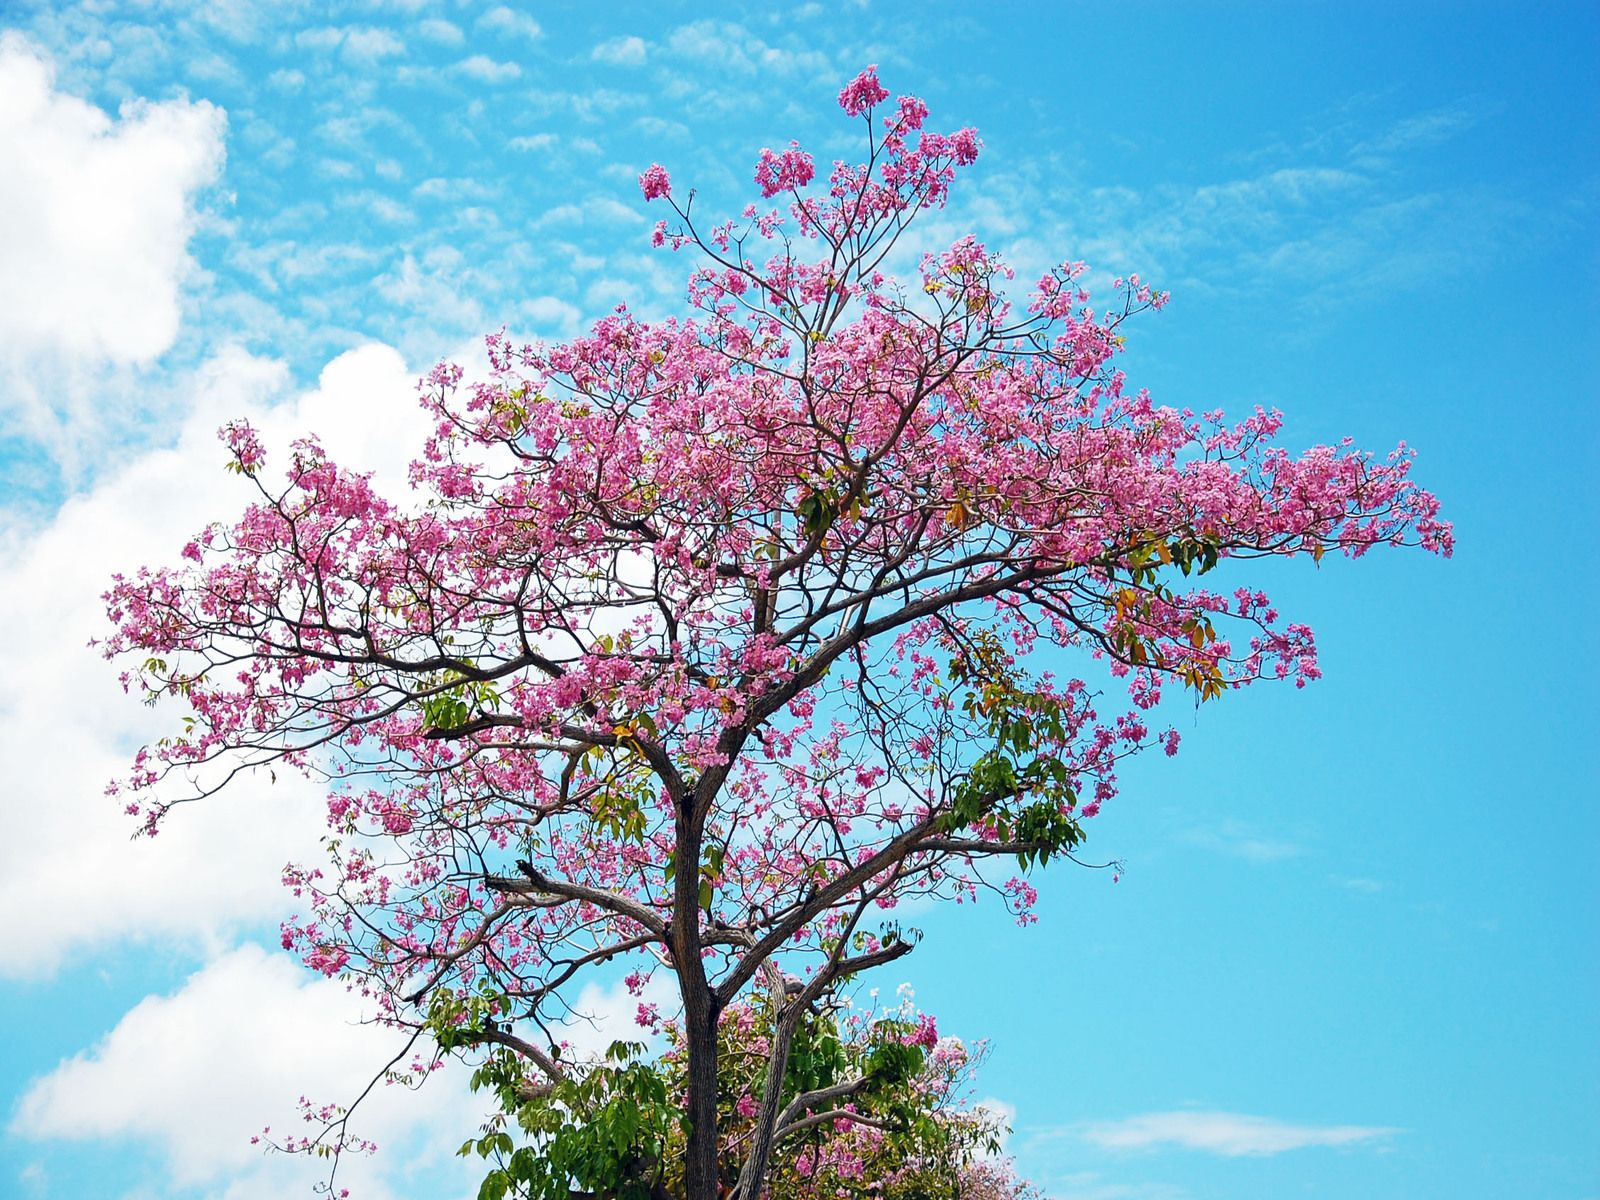 Cherry Blossom Tree 32 HD Wallpaper Wallpaper